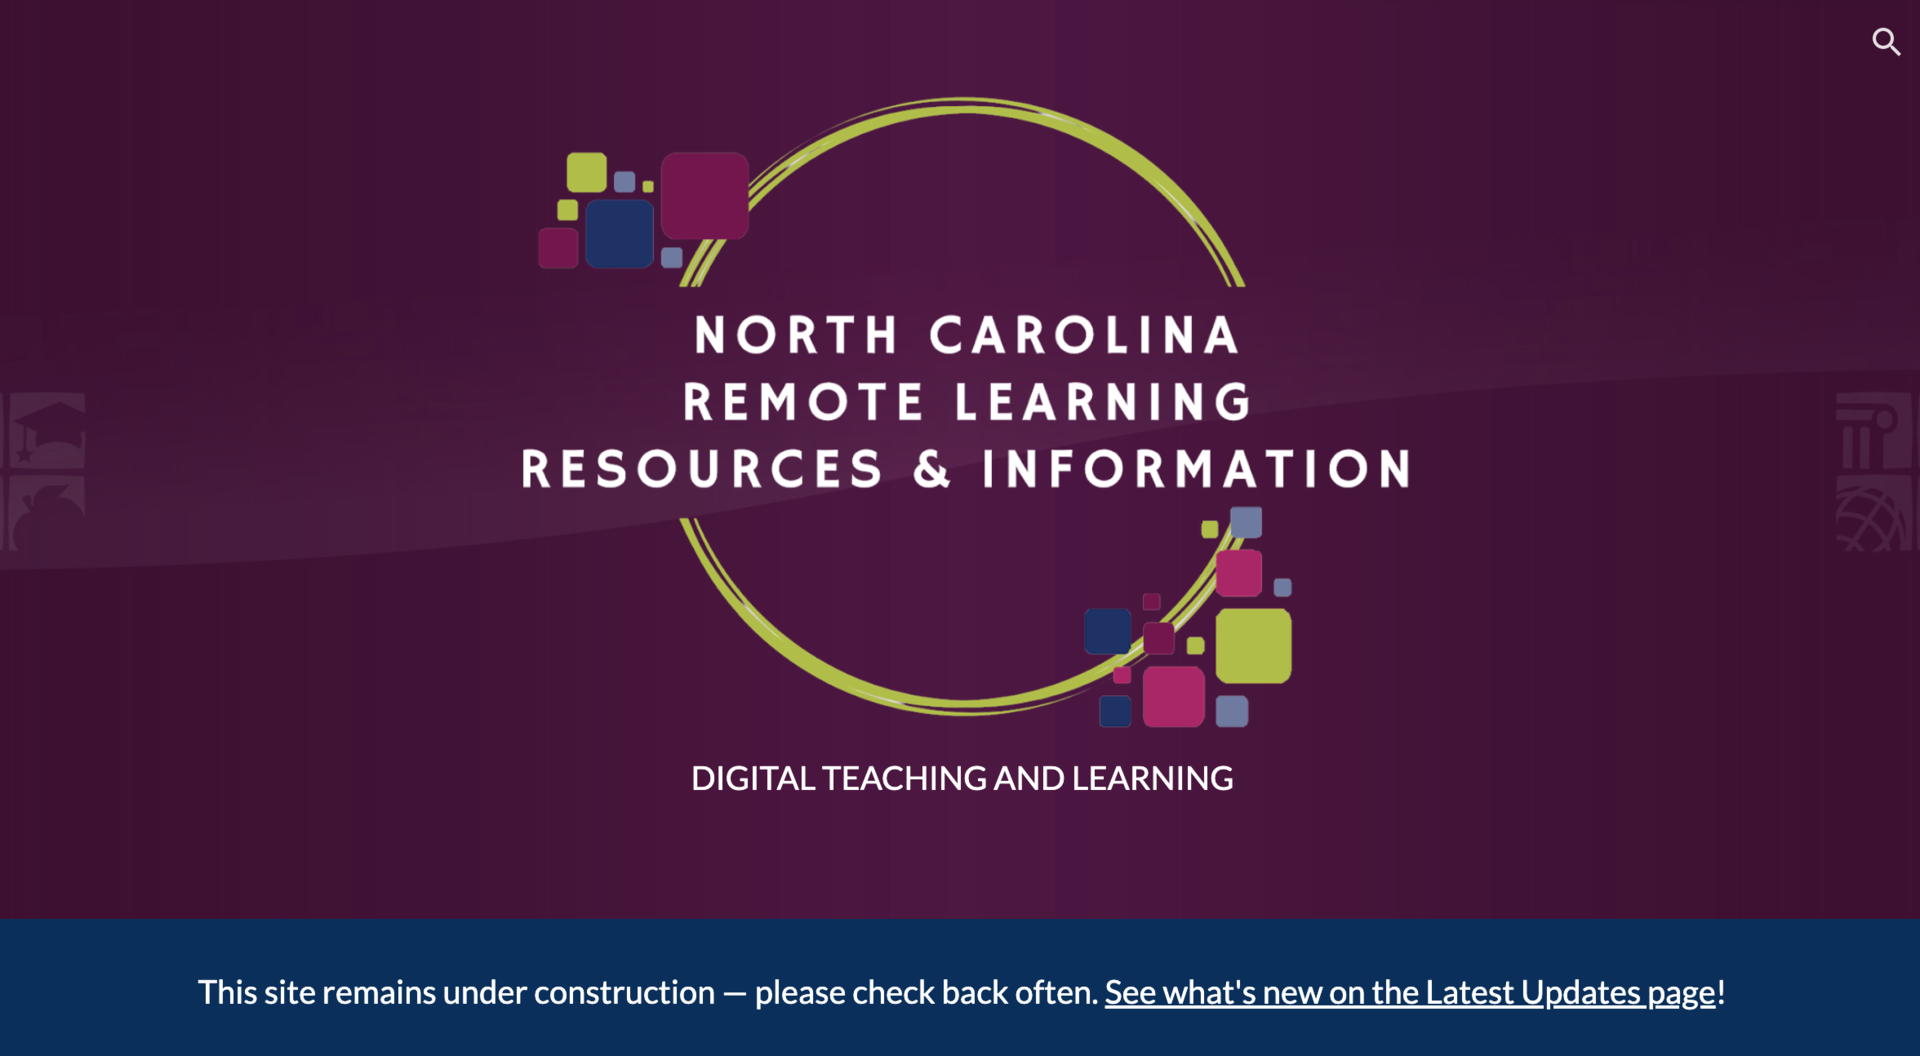 Image of NCDPI Remote Learning Resources Page